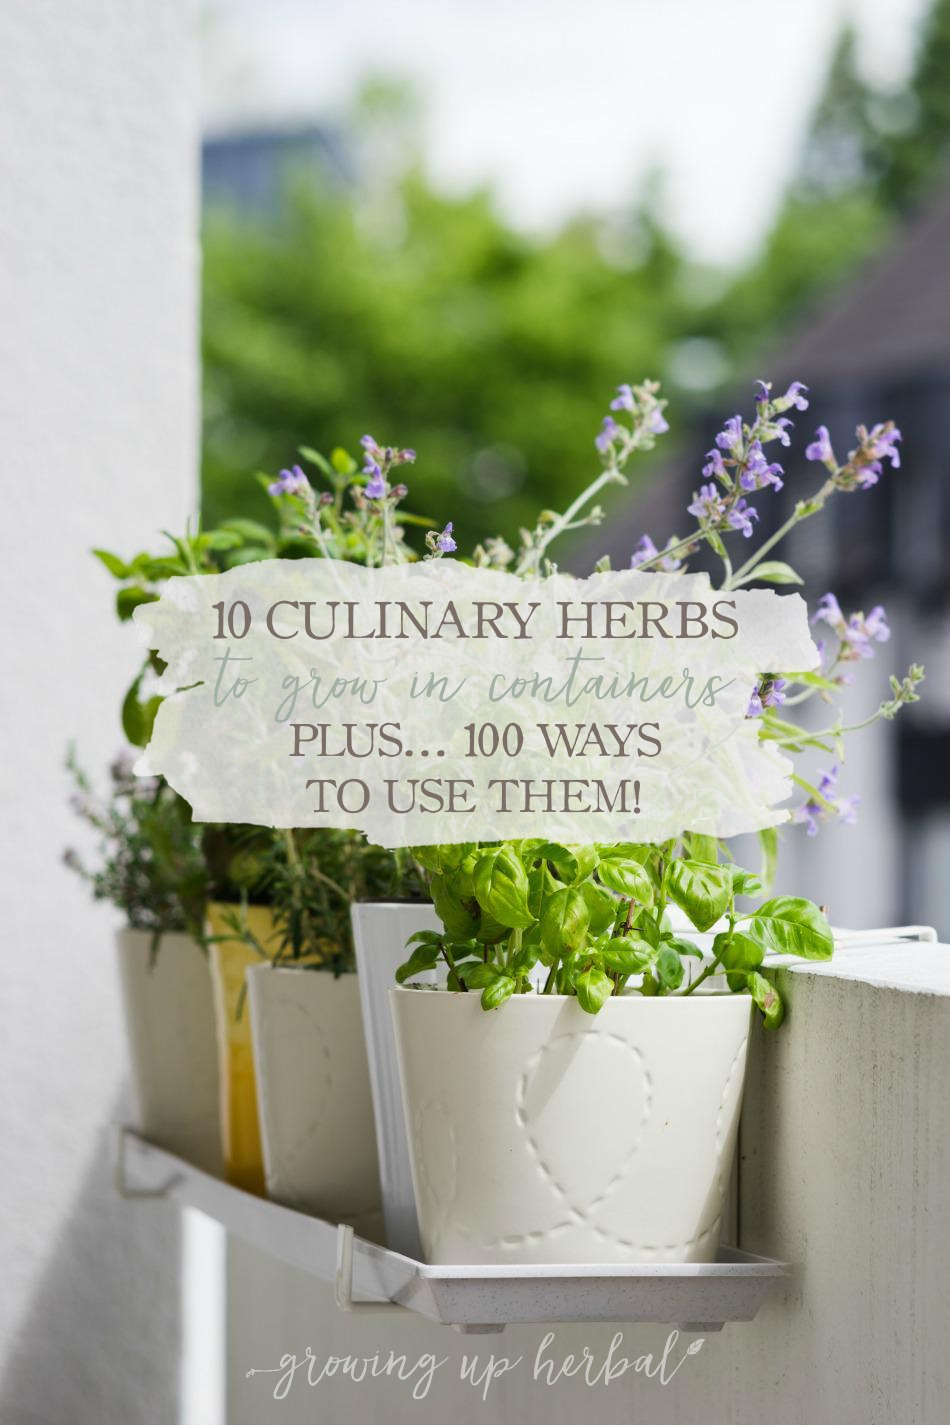 10 Culinary Herbs To Grow In Containers (+ 100 Ways To Use Them) | Growing Up Herbal | 10 herbs to grow in containers and use in your homemade food, skincare, and medicinal products.